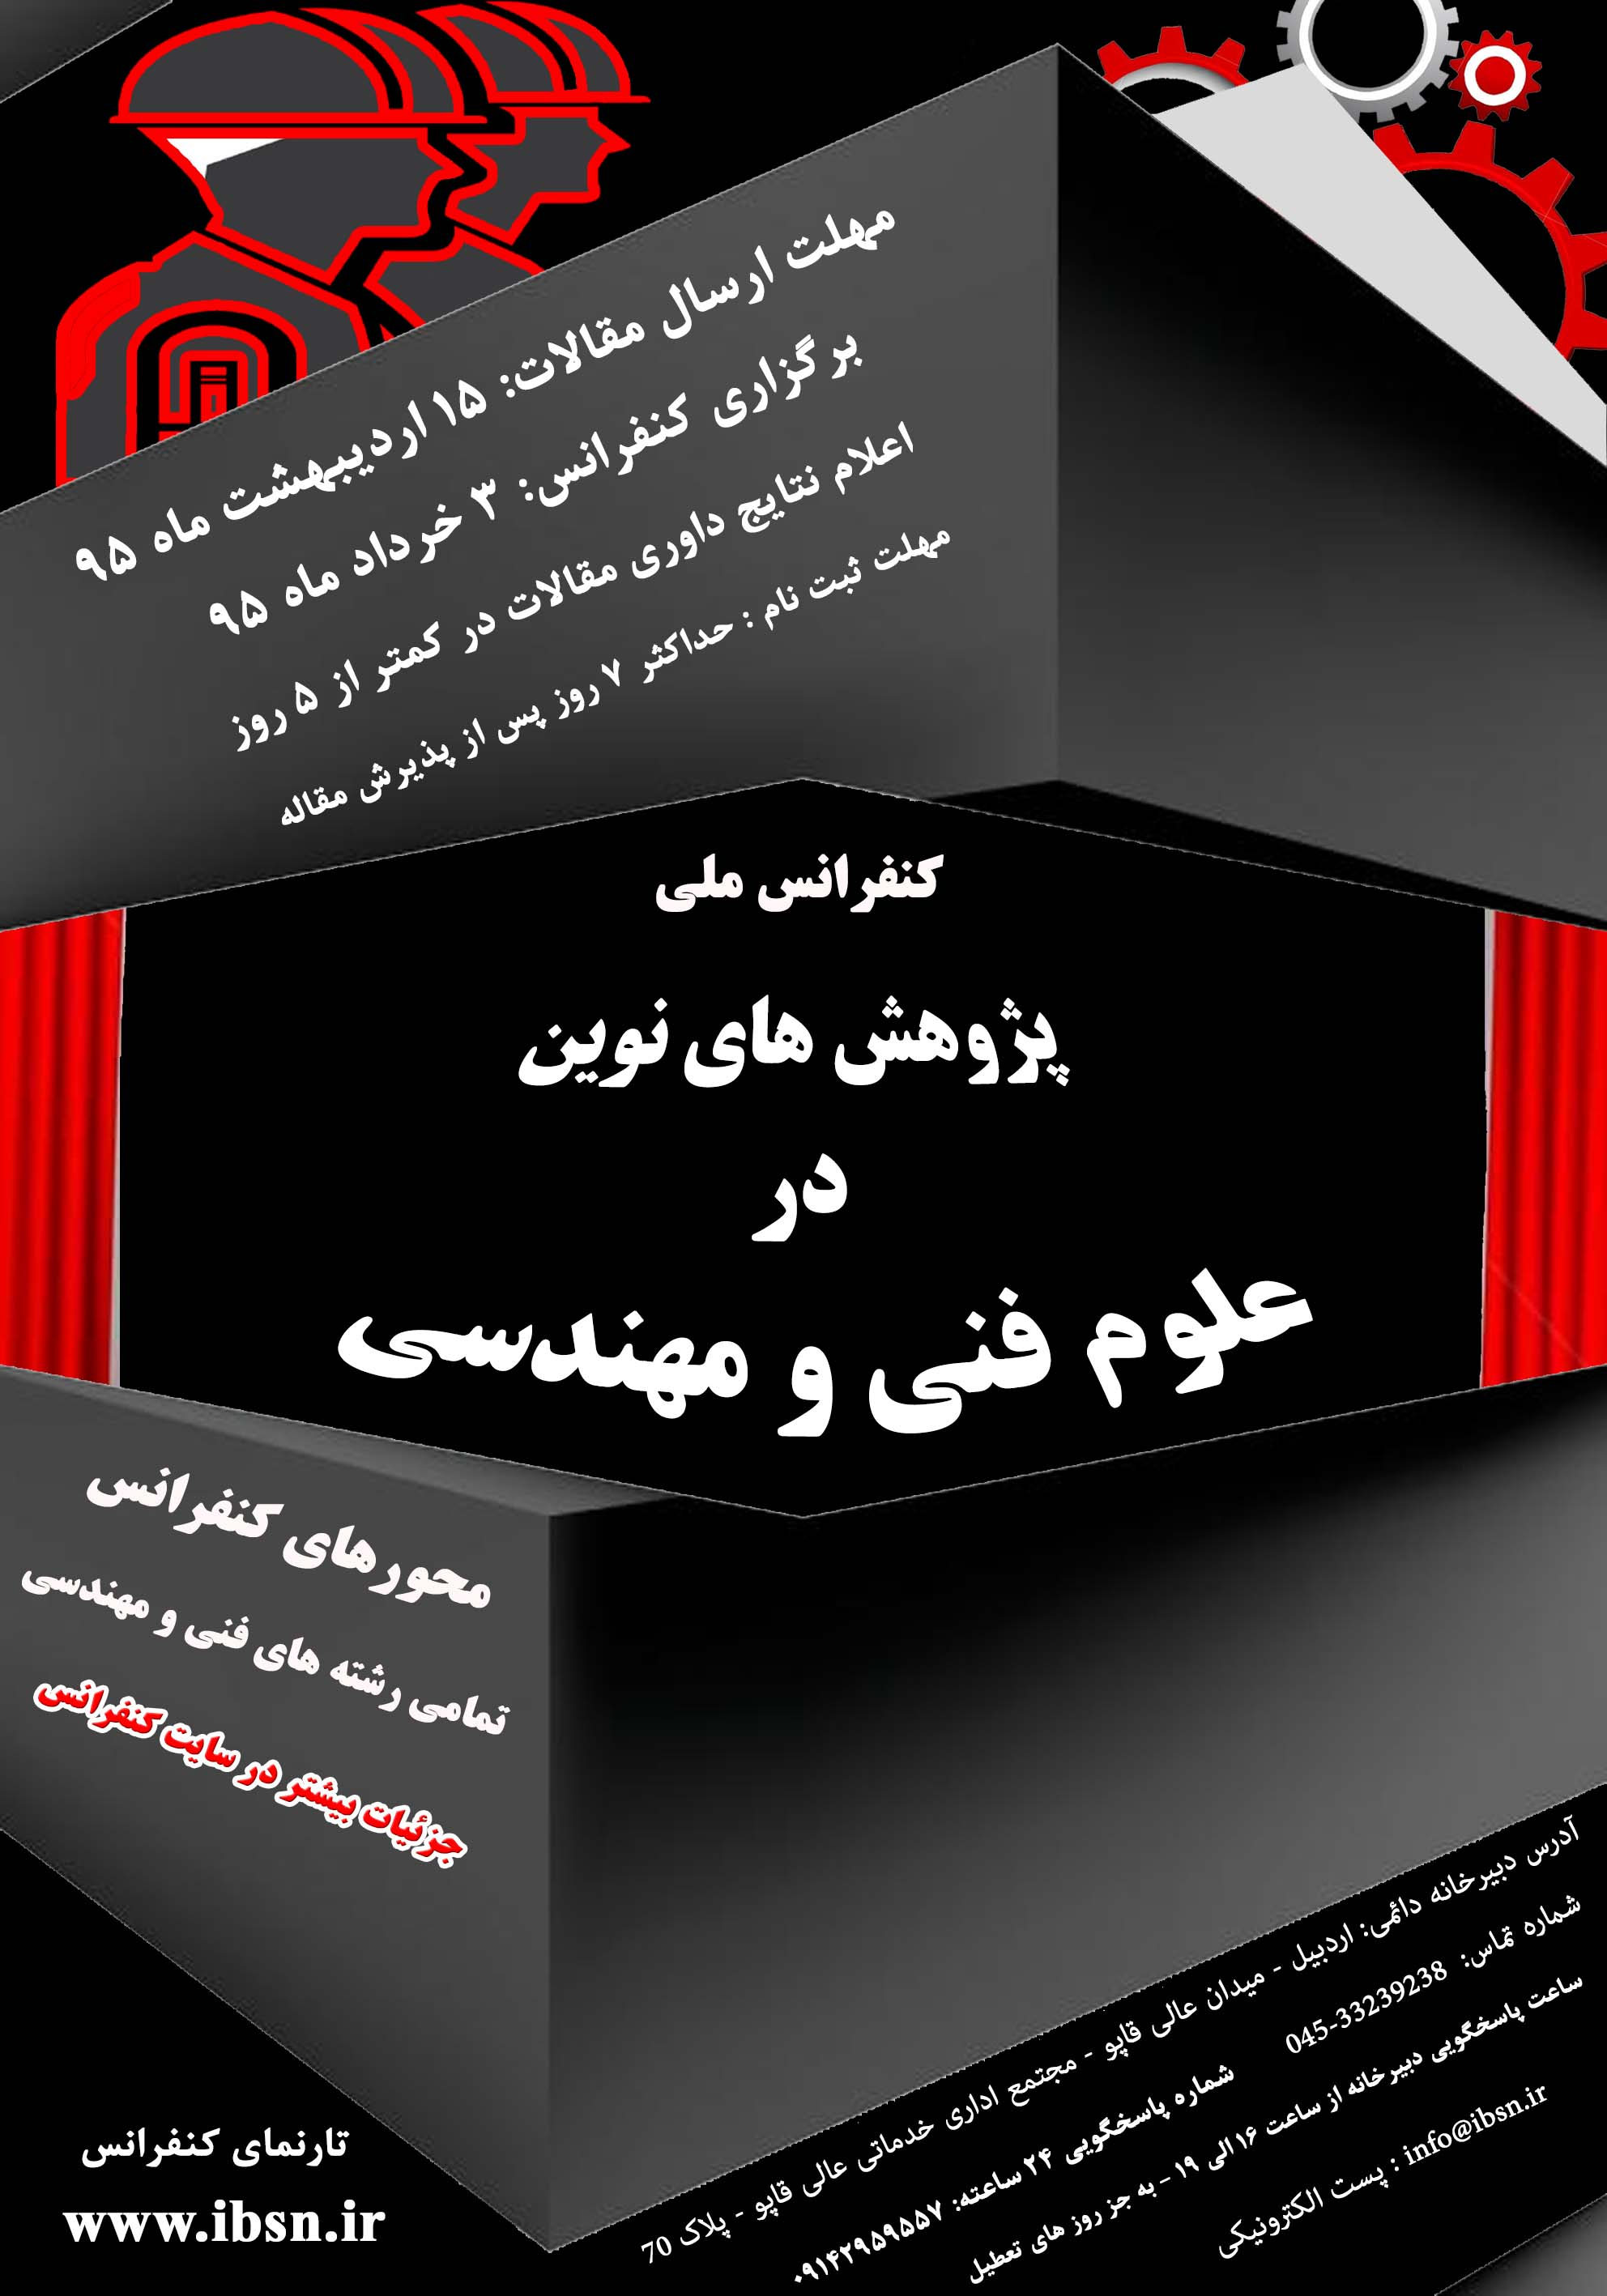 http://iconf.ir/poster_images/poster_1454163006_7455_file.jpg